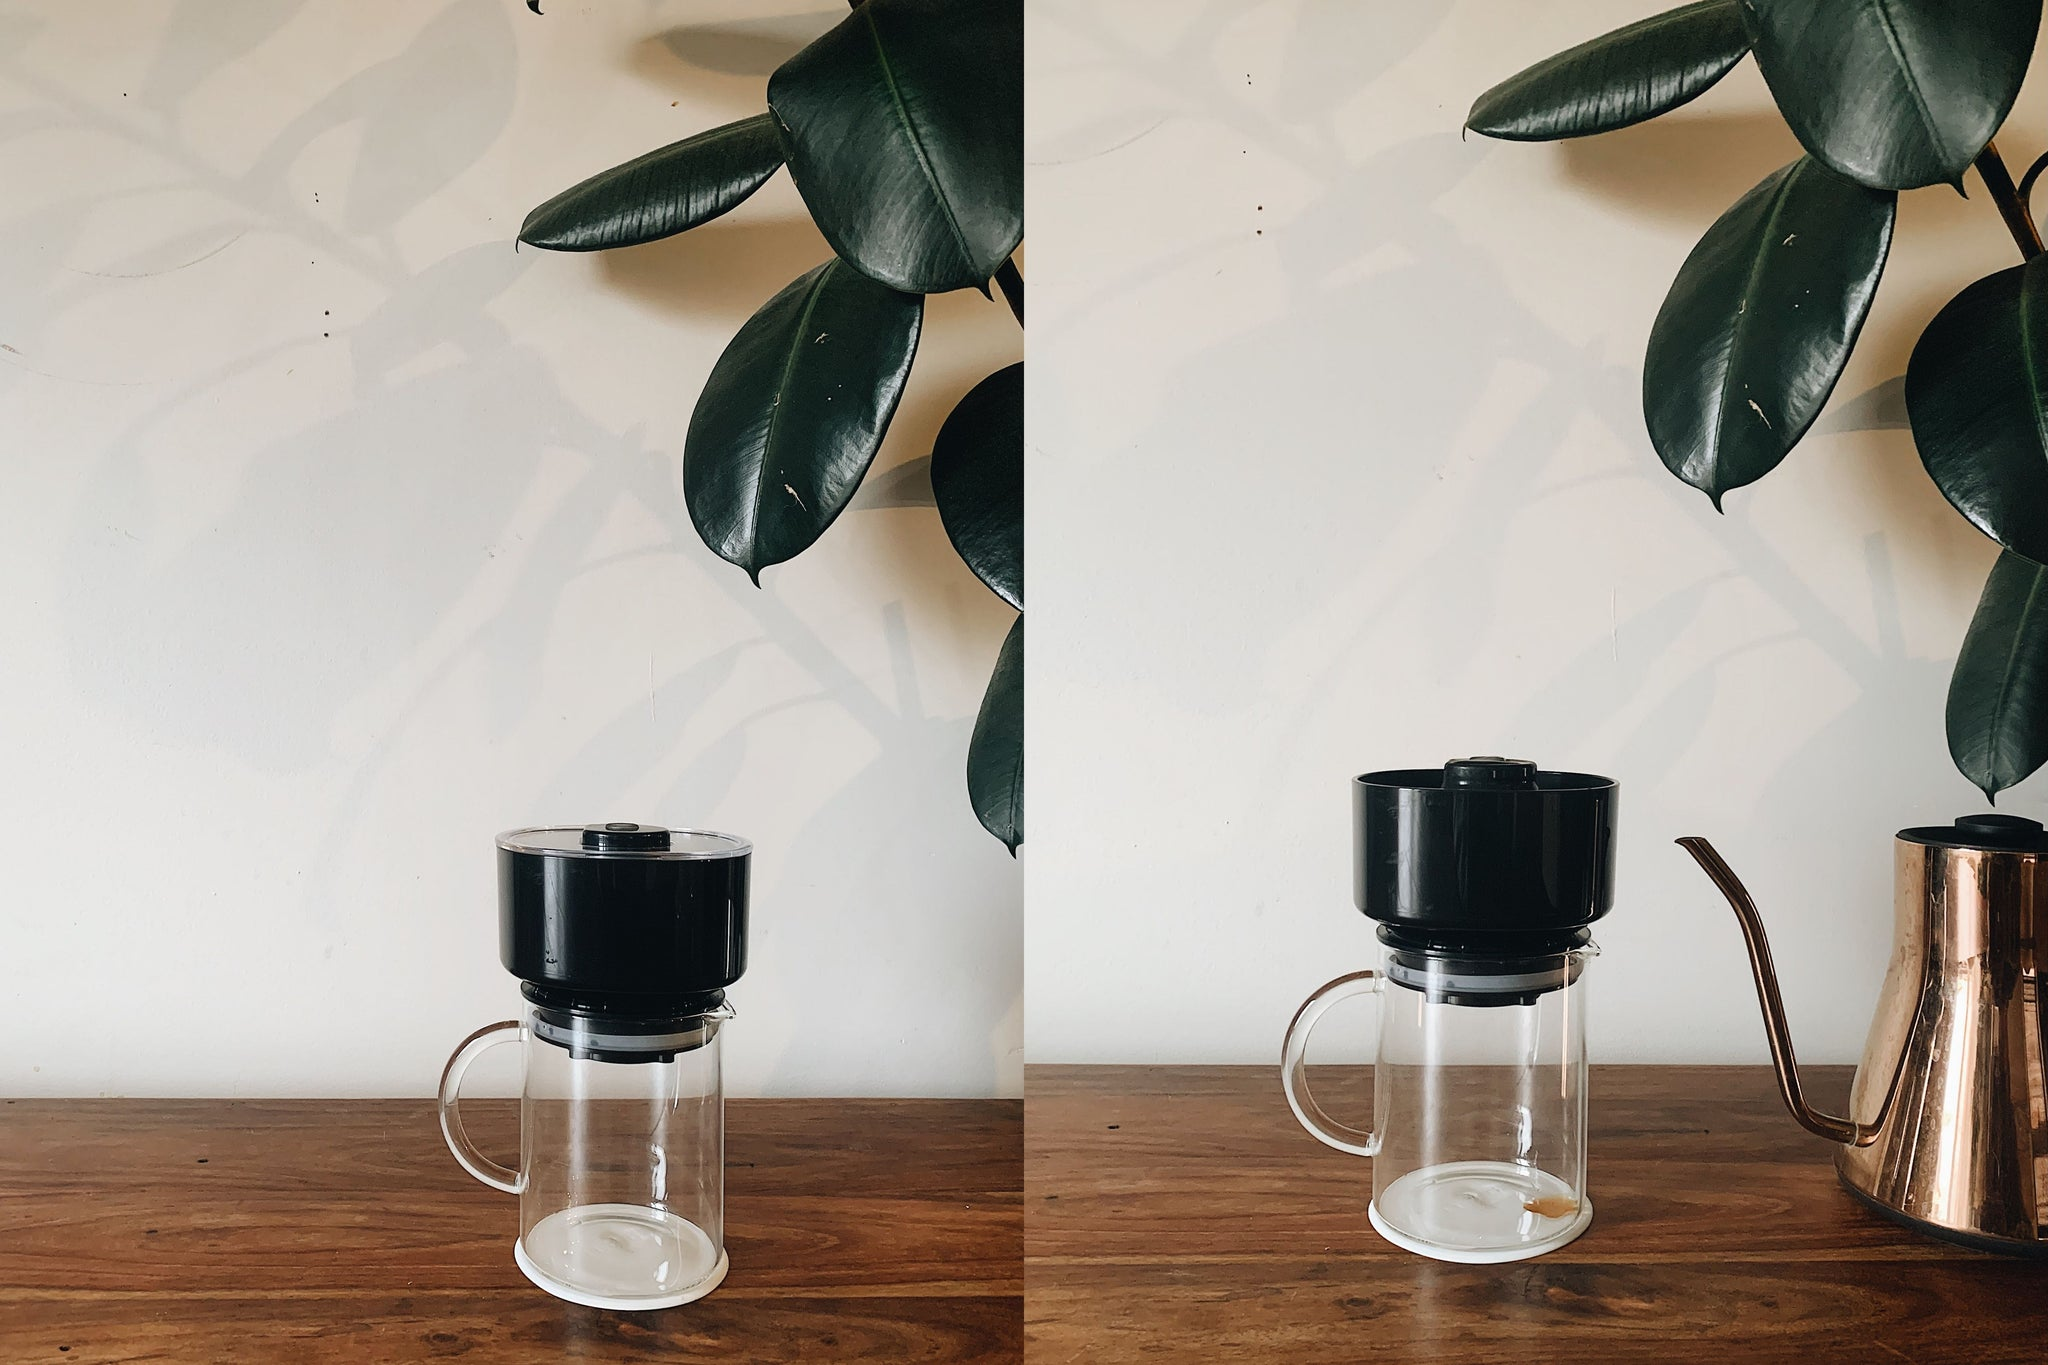 L: Empty VacOne with leaves in the background; R: VacOne next to copper Fellow Kettle with leaves in the background